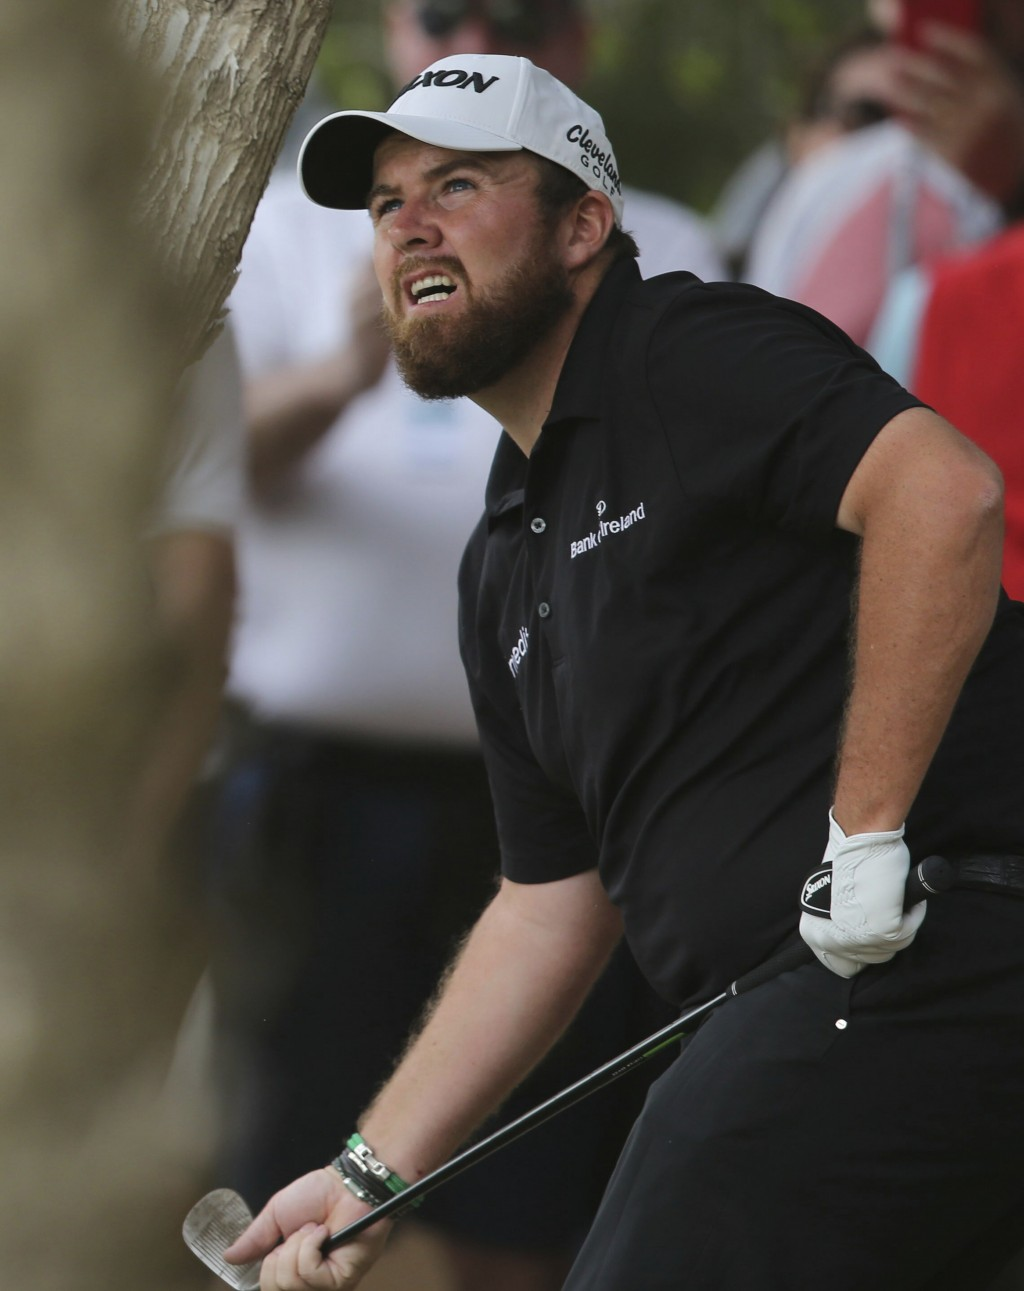 Shane Lowry of Ireland follows his ball on the 2nd hole in the final round of the Abu Dhabi Championship golf tournament in Abu Dhabi, United Arab Emi...